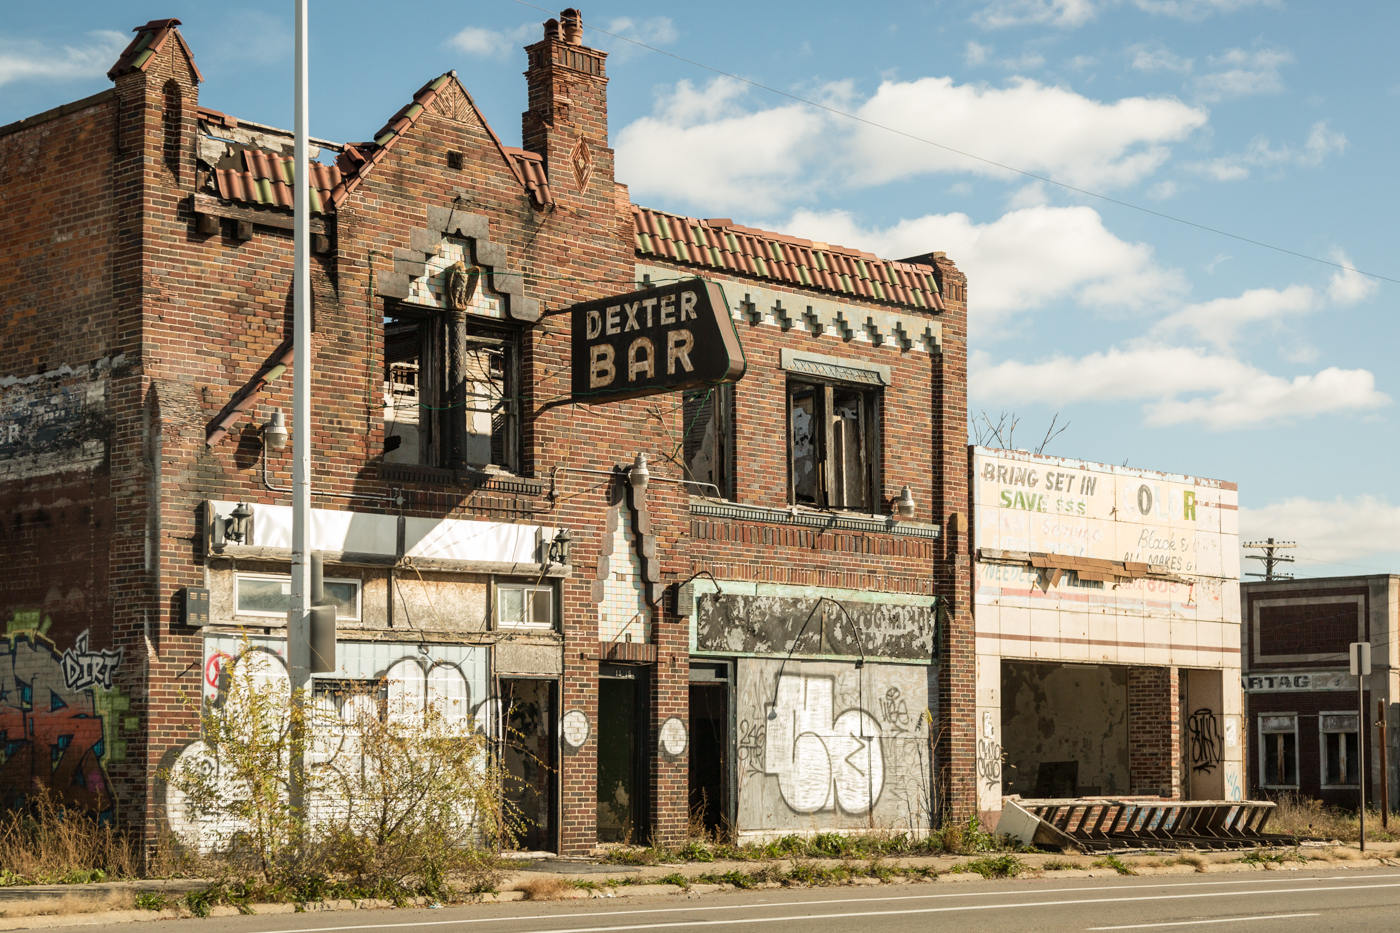 Buildings on Dexter Avenue, Detroit